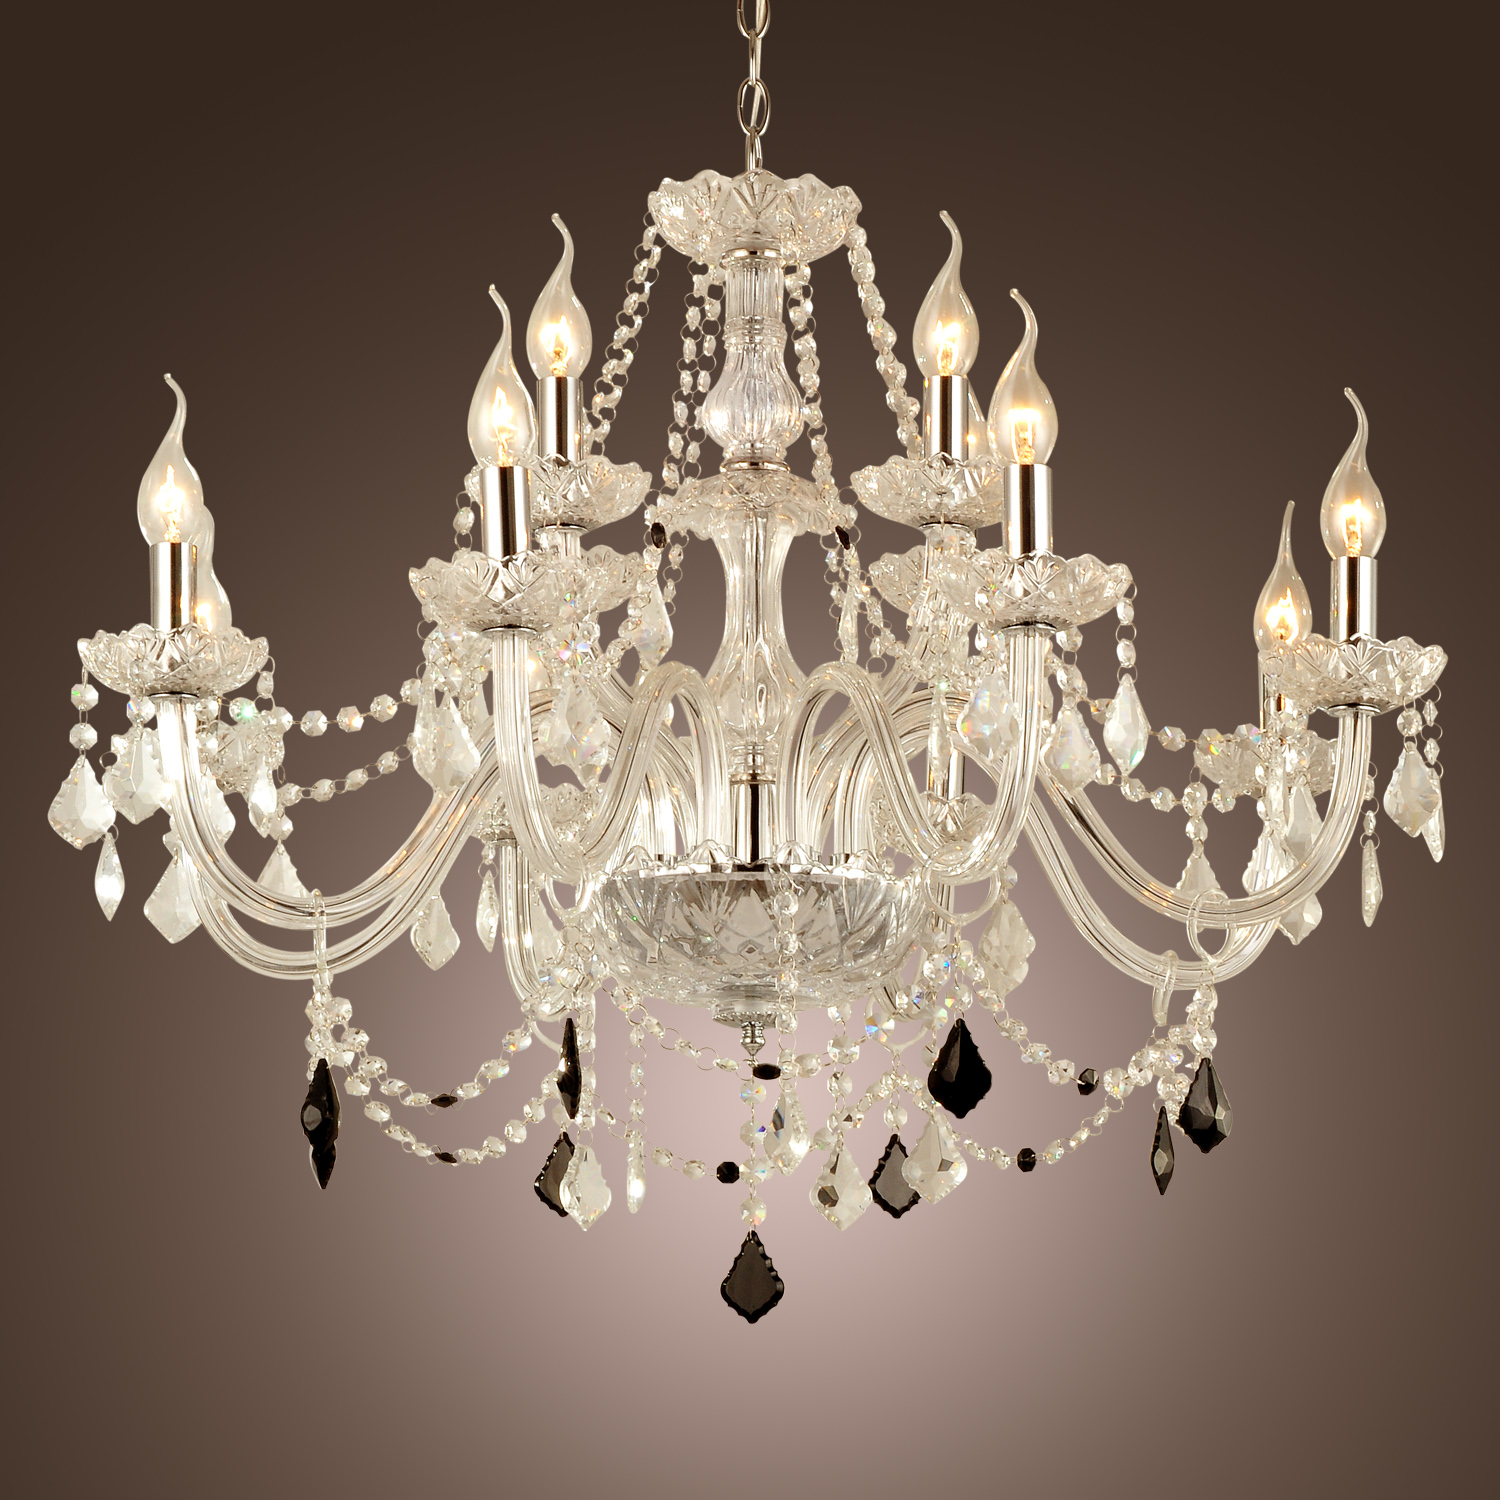 12 LIGHT VENETIAN MURANO STYLE CRYSTAL CHANDELIER KITCHEN